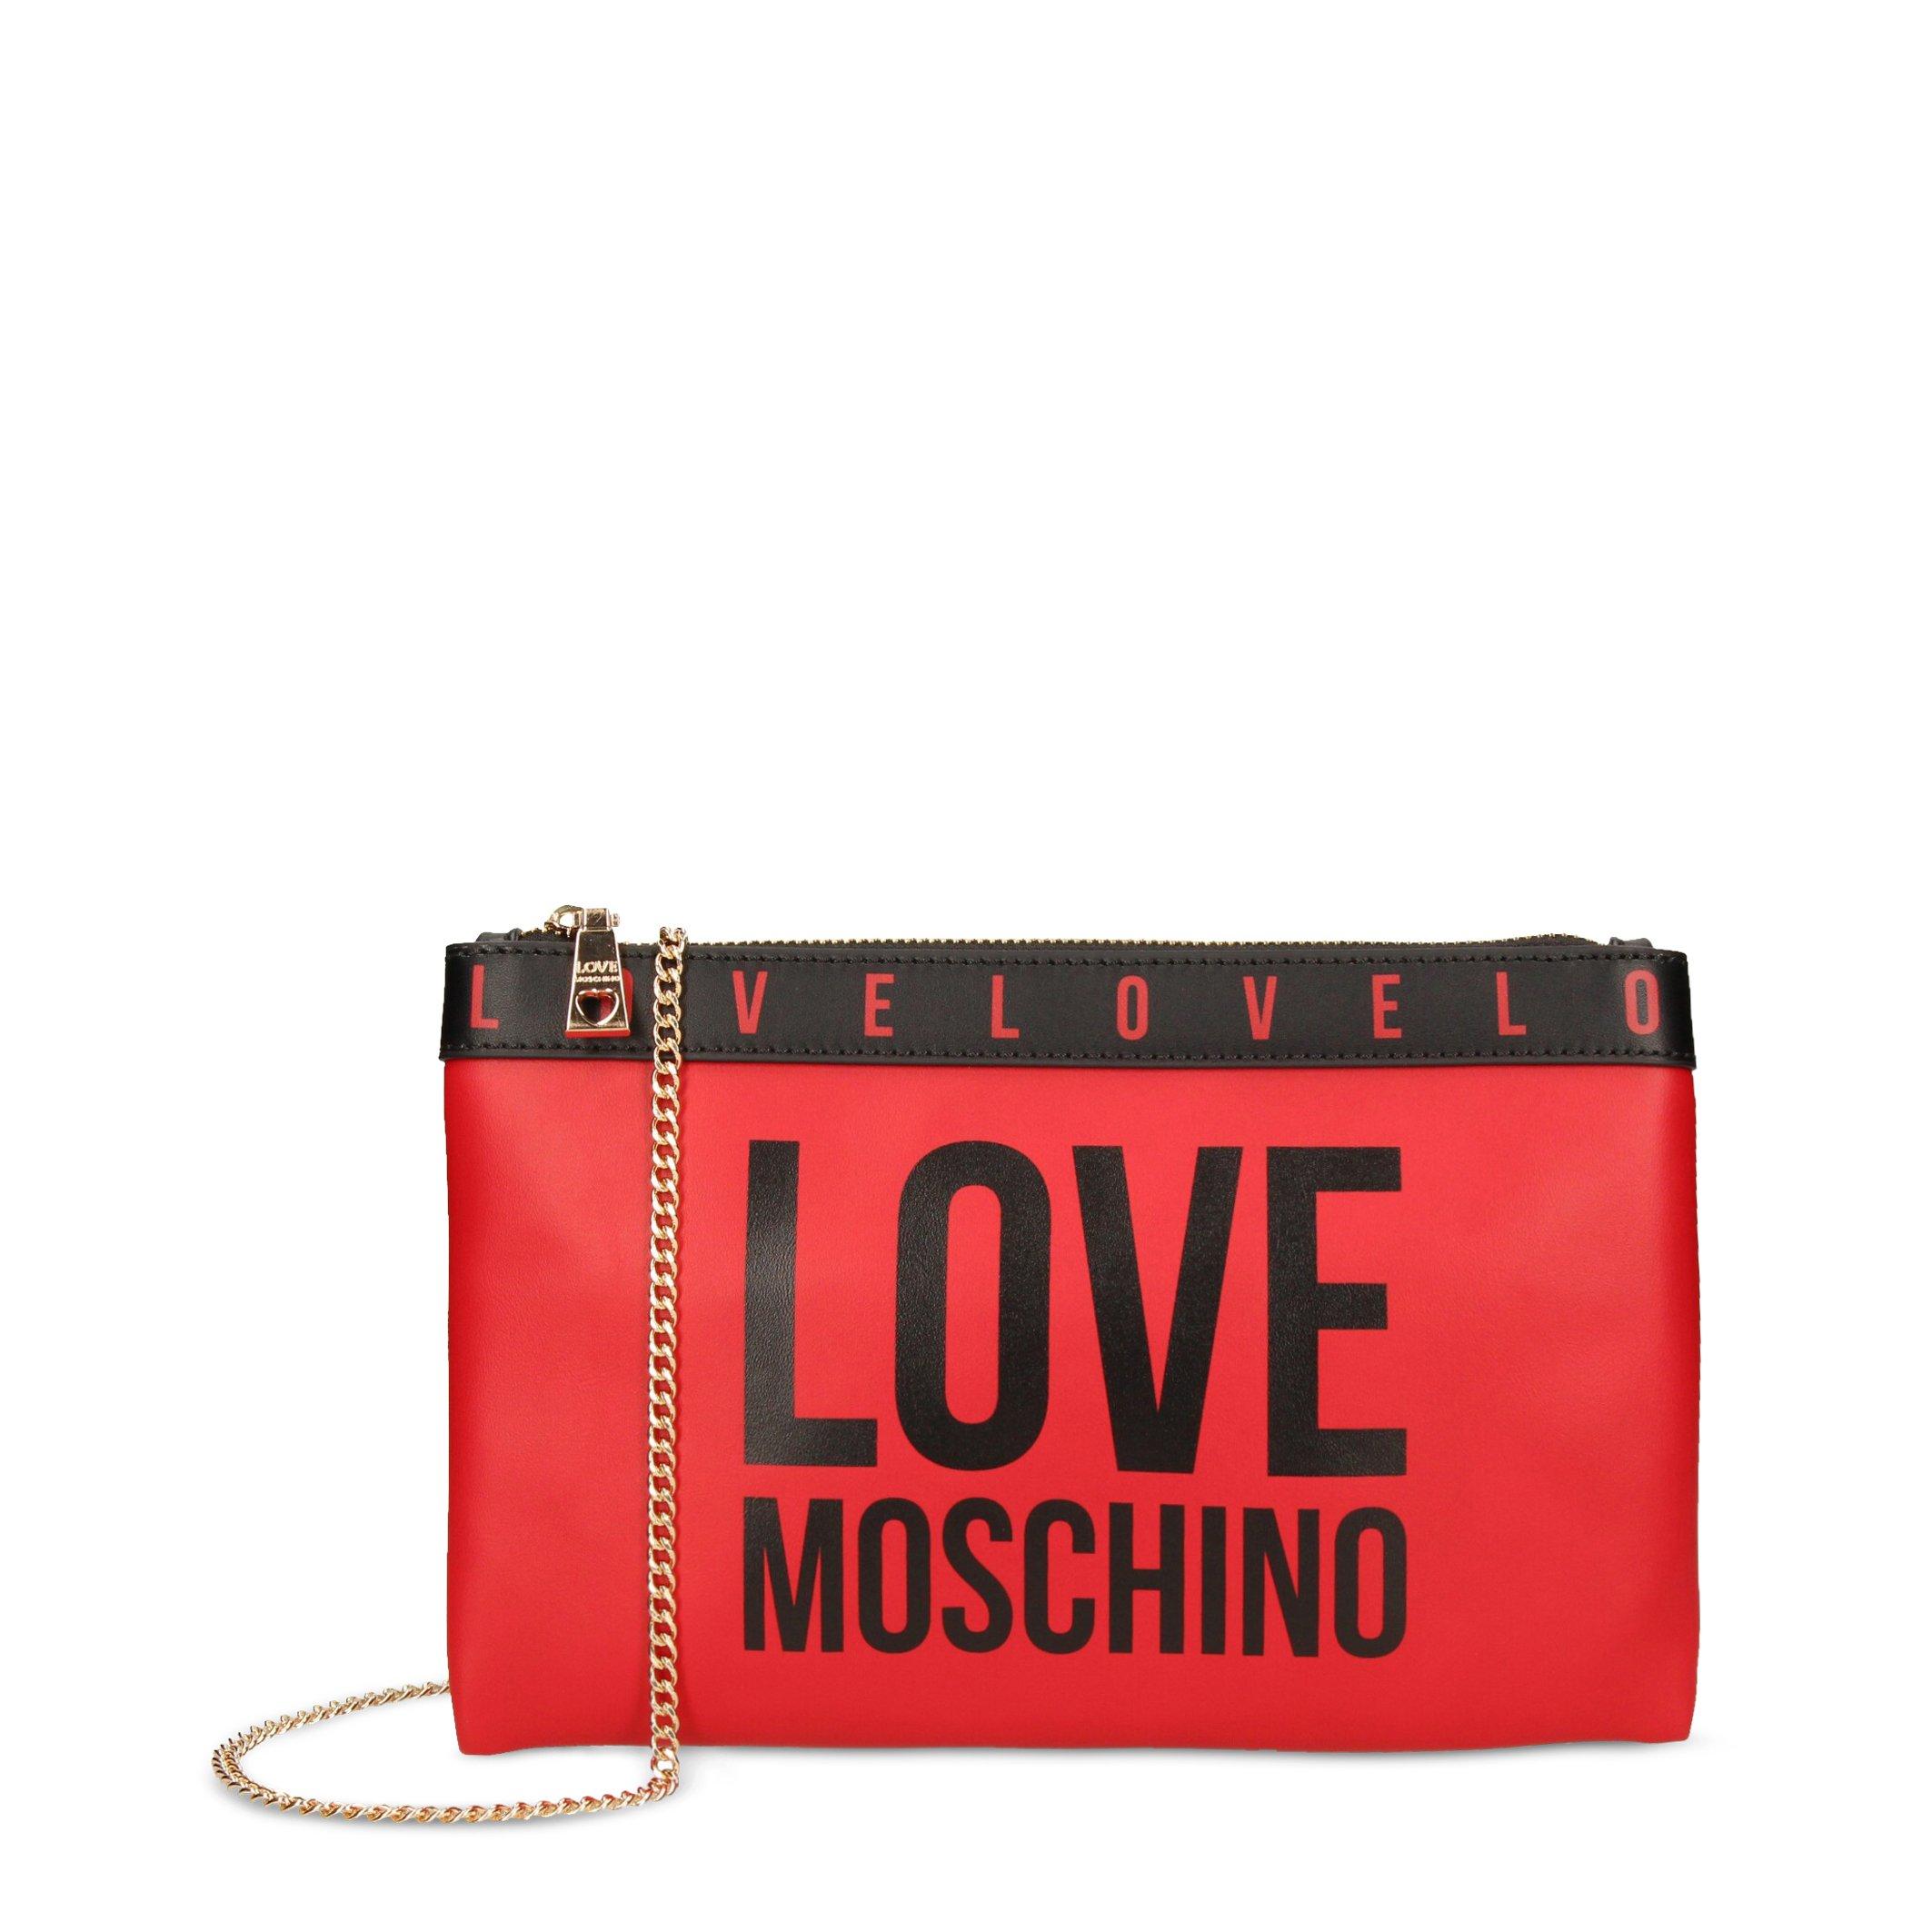 Love Moschino Women's Clutch Bag Various Colours JC4185PP1DLI0 - red NOSIZE